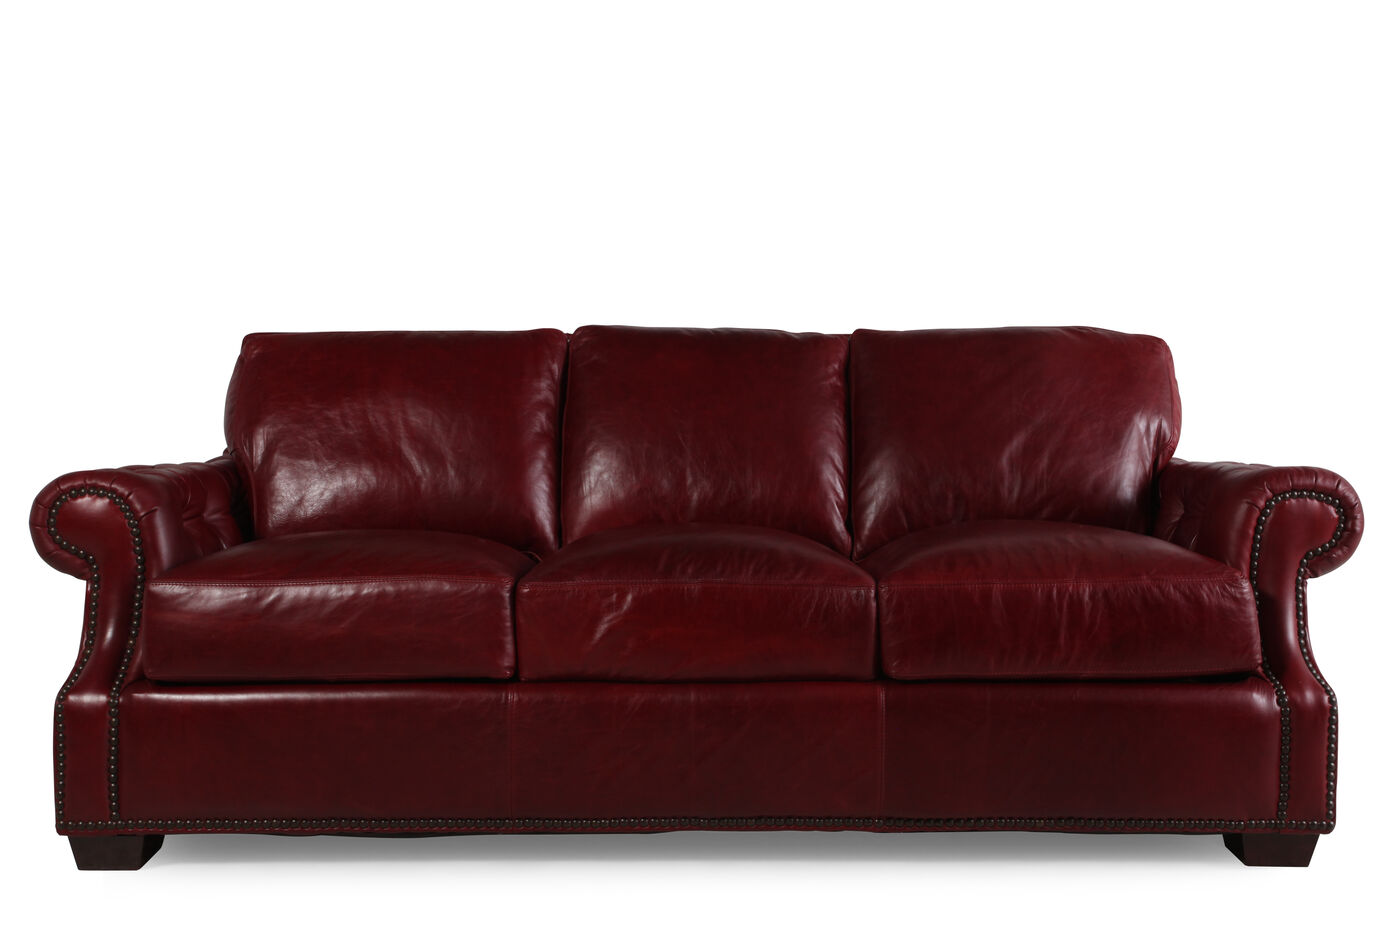 Usa leather cowboy sofa reviews Cowboy sofa